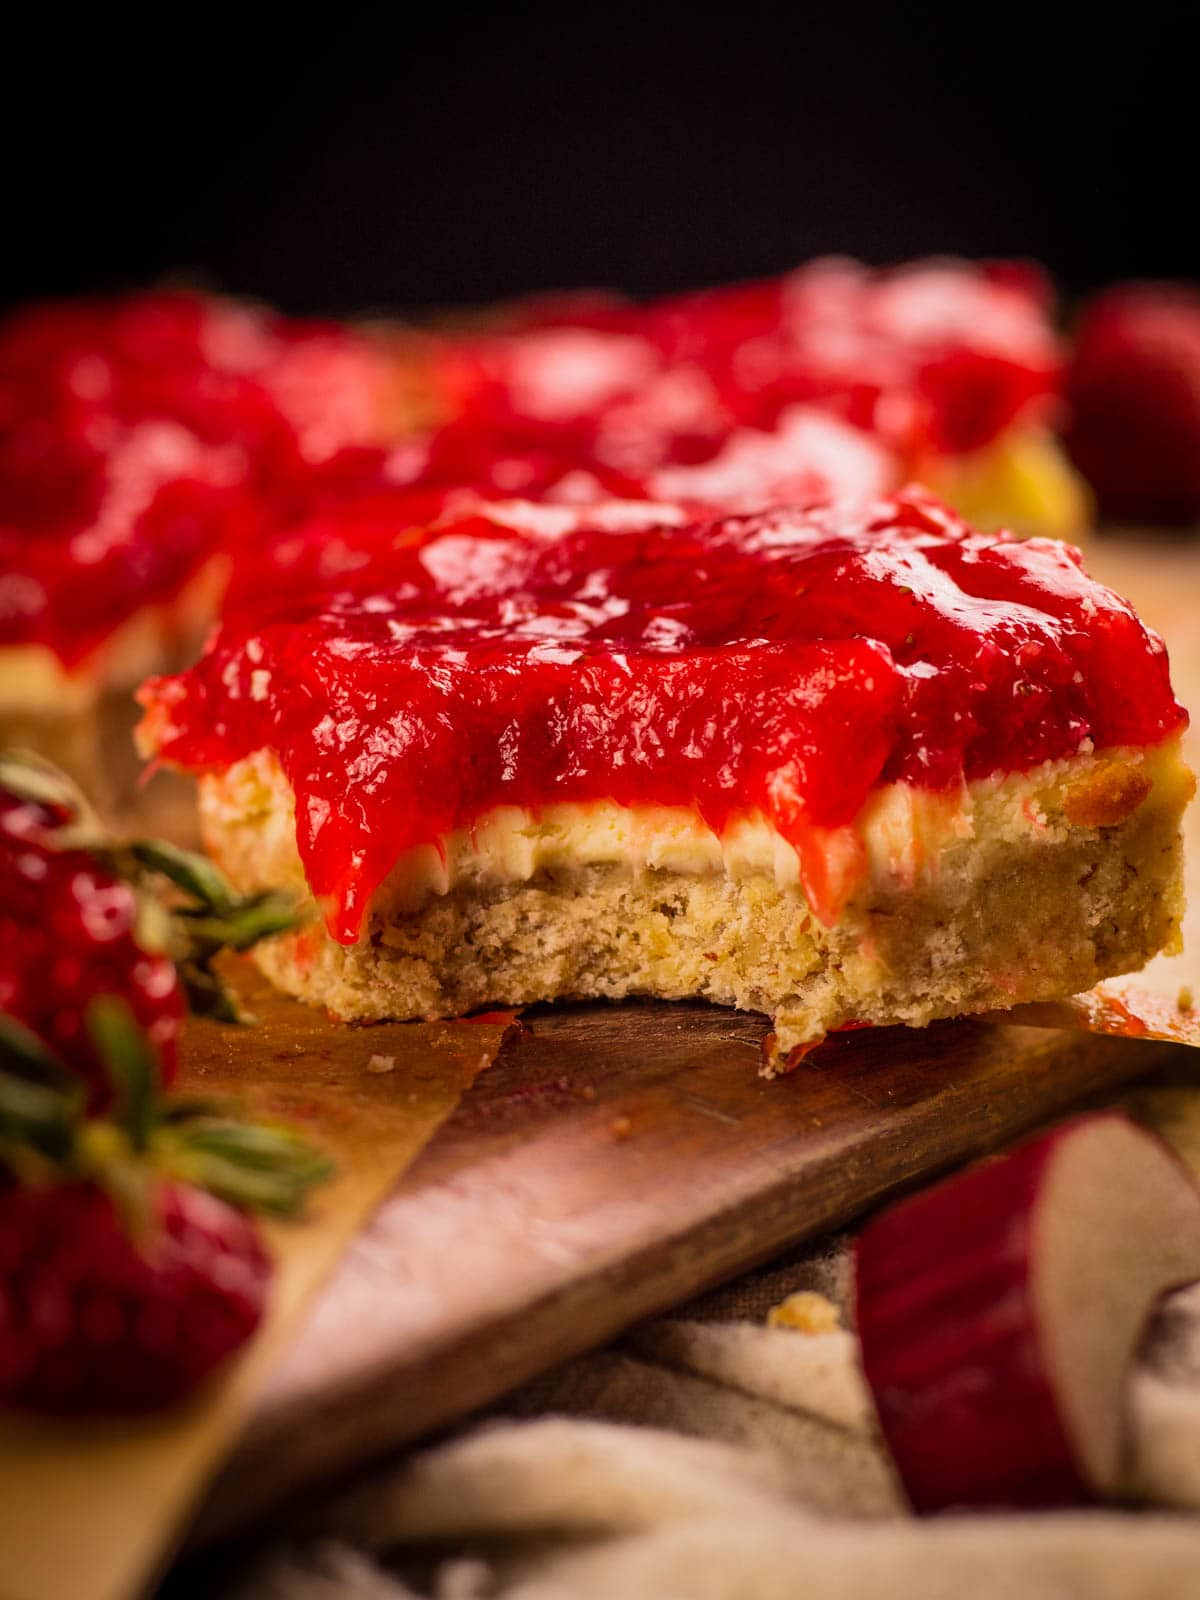 cheesecake bar with red jam on top with a bite taken from it